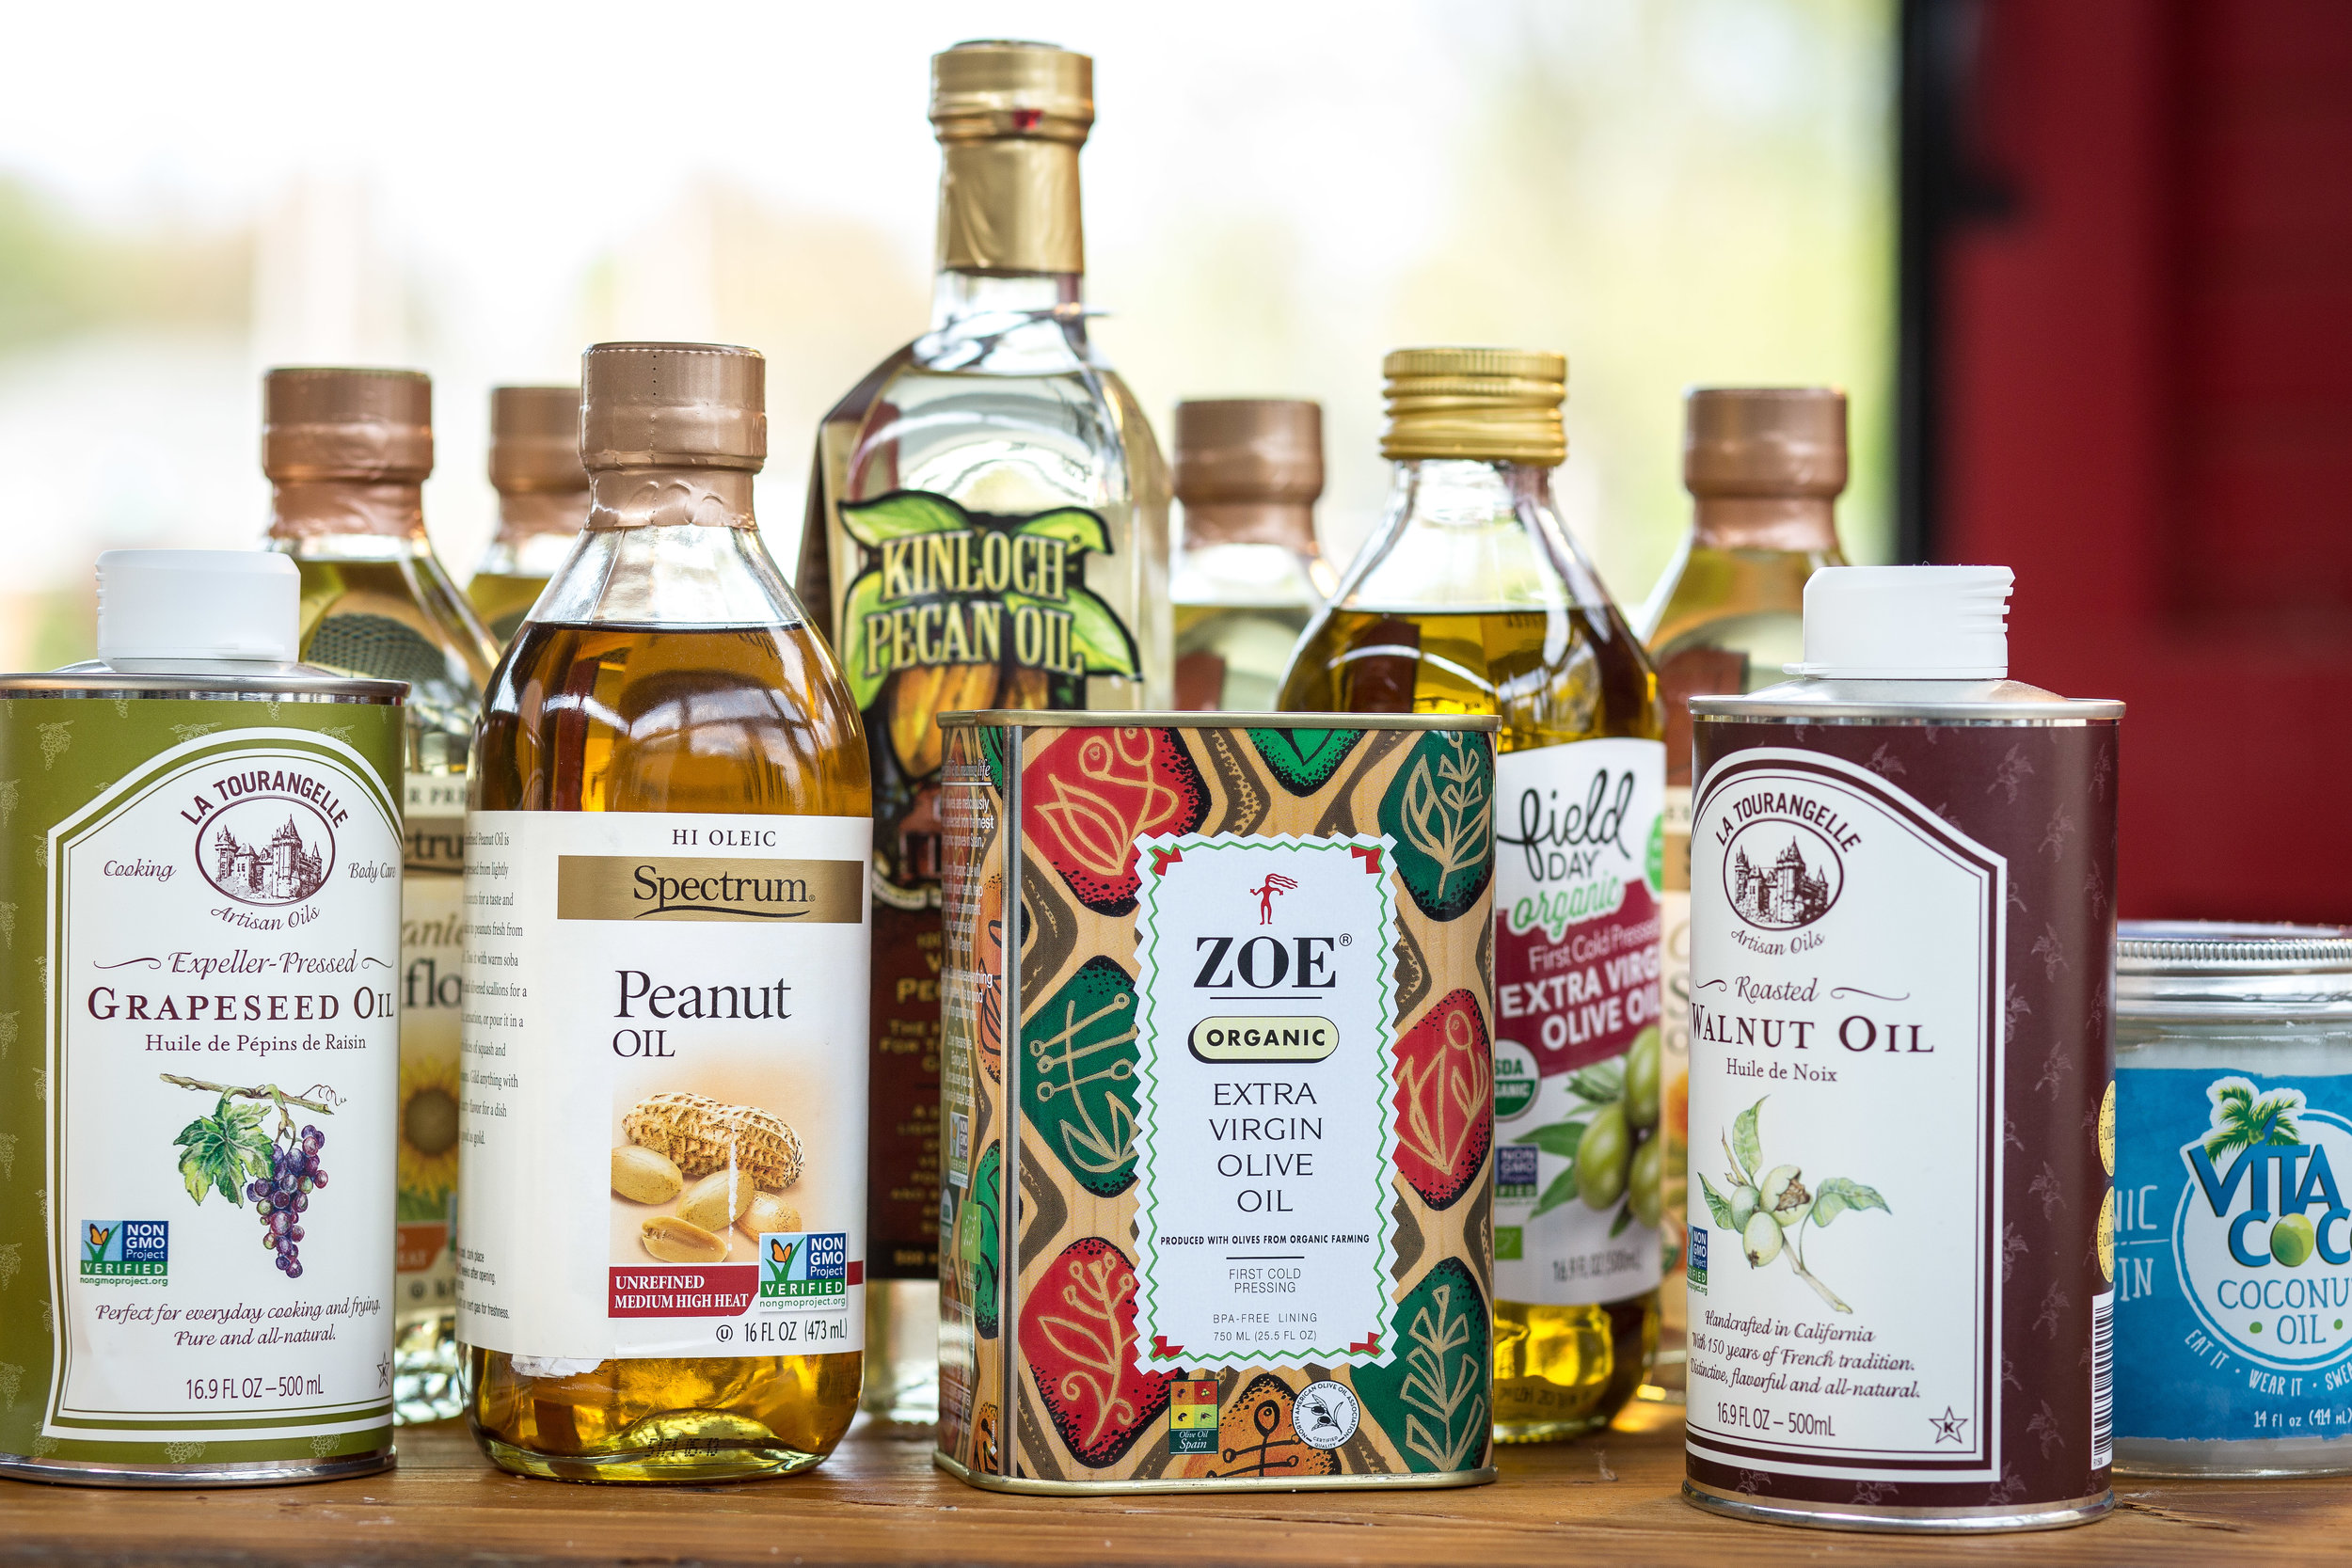 Find these varieties of organic and all-natural oils and more at Midtown Market.